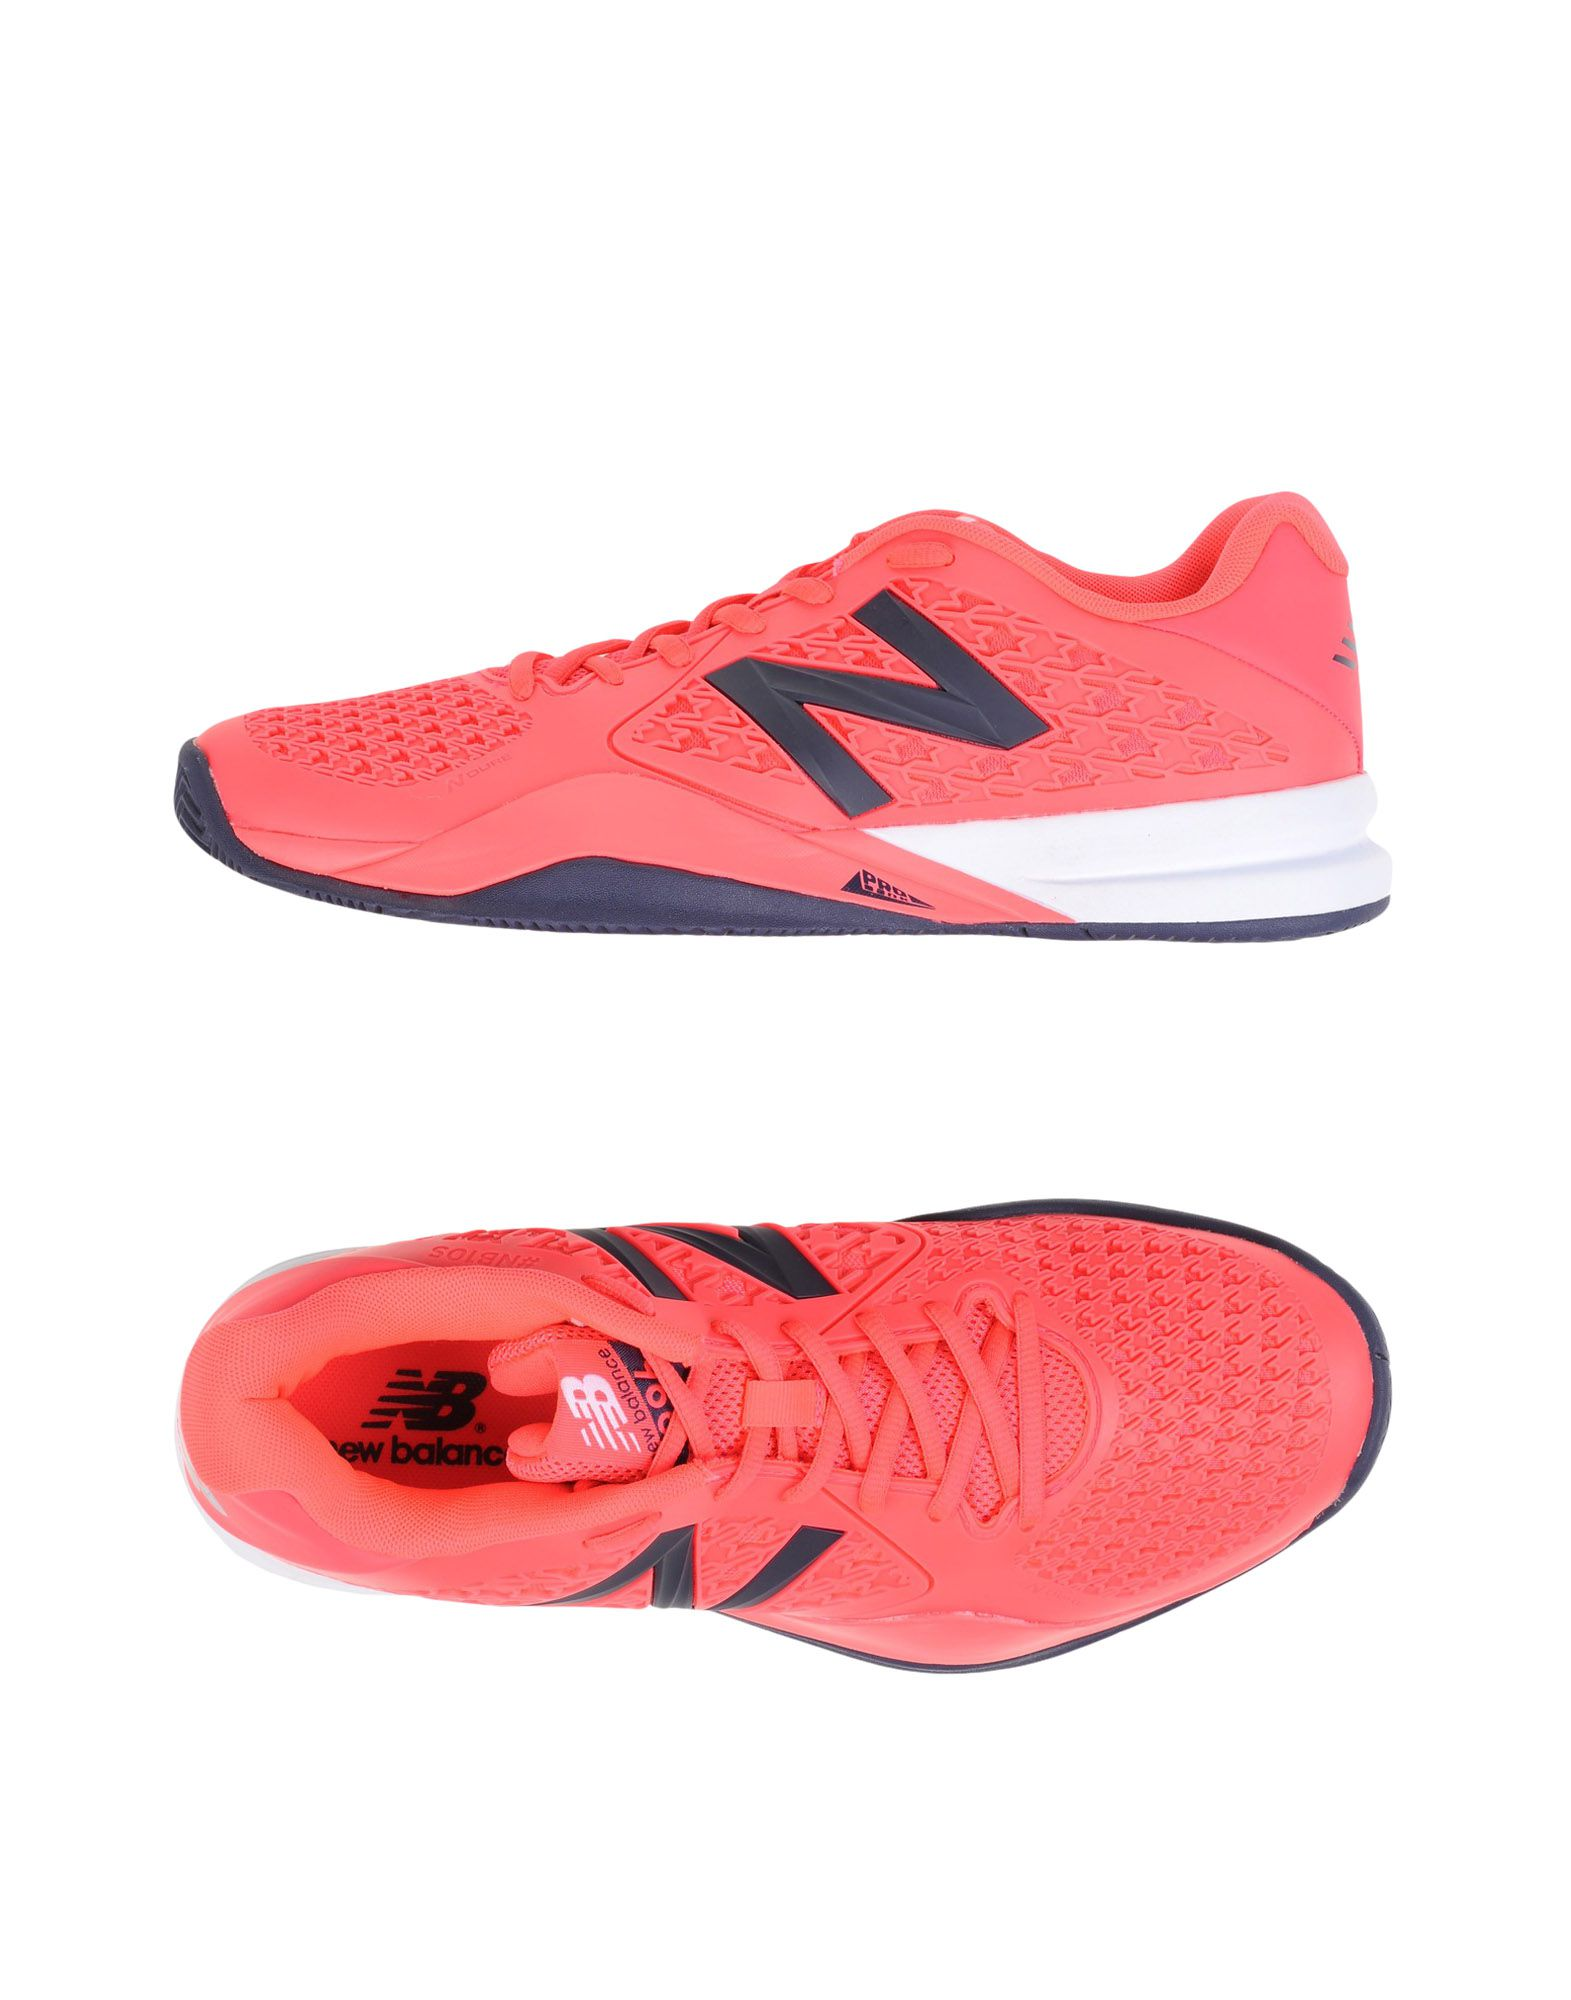 New Balance 996 996 996 V2 Lightweight - Sneakers - Men New Balance Sneakers online on  United Kingdom - 11104109XX 6165ce